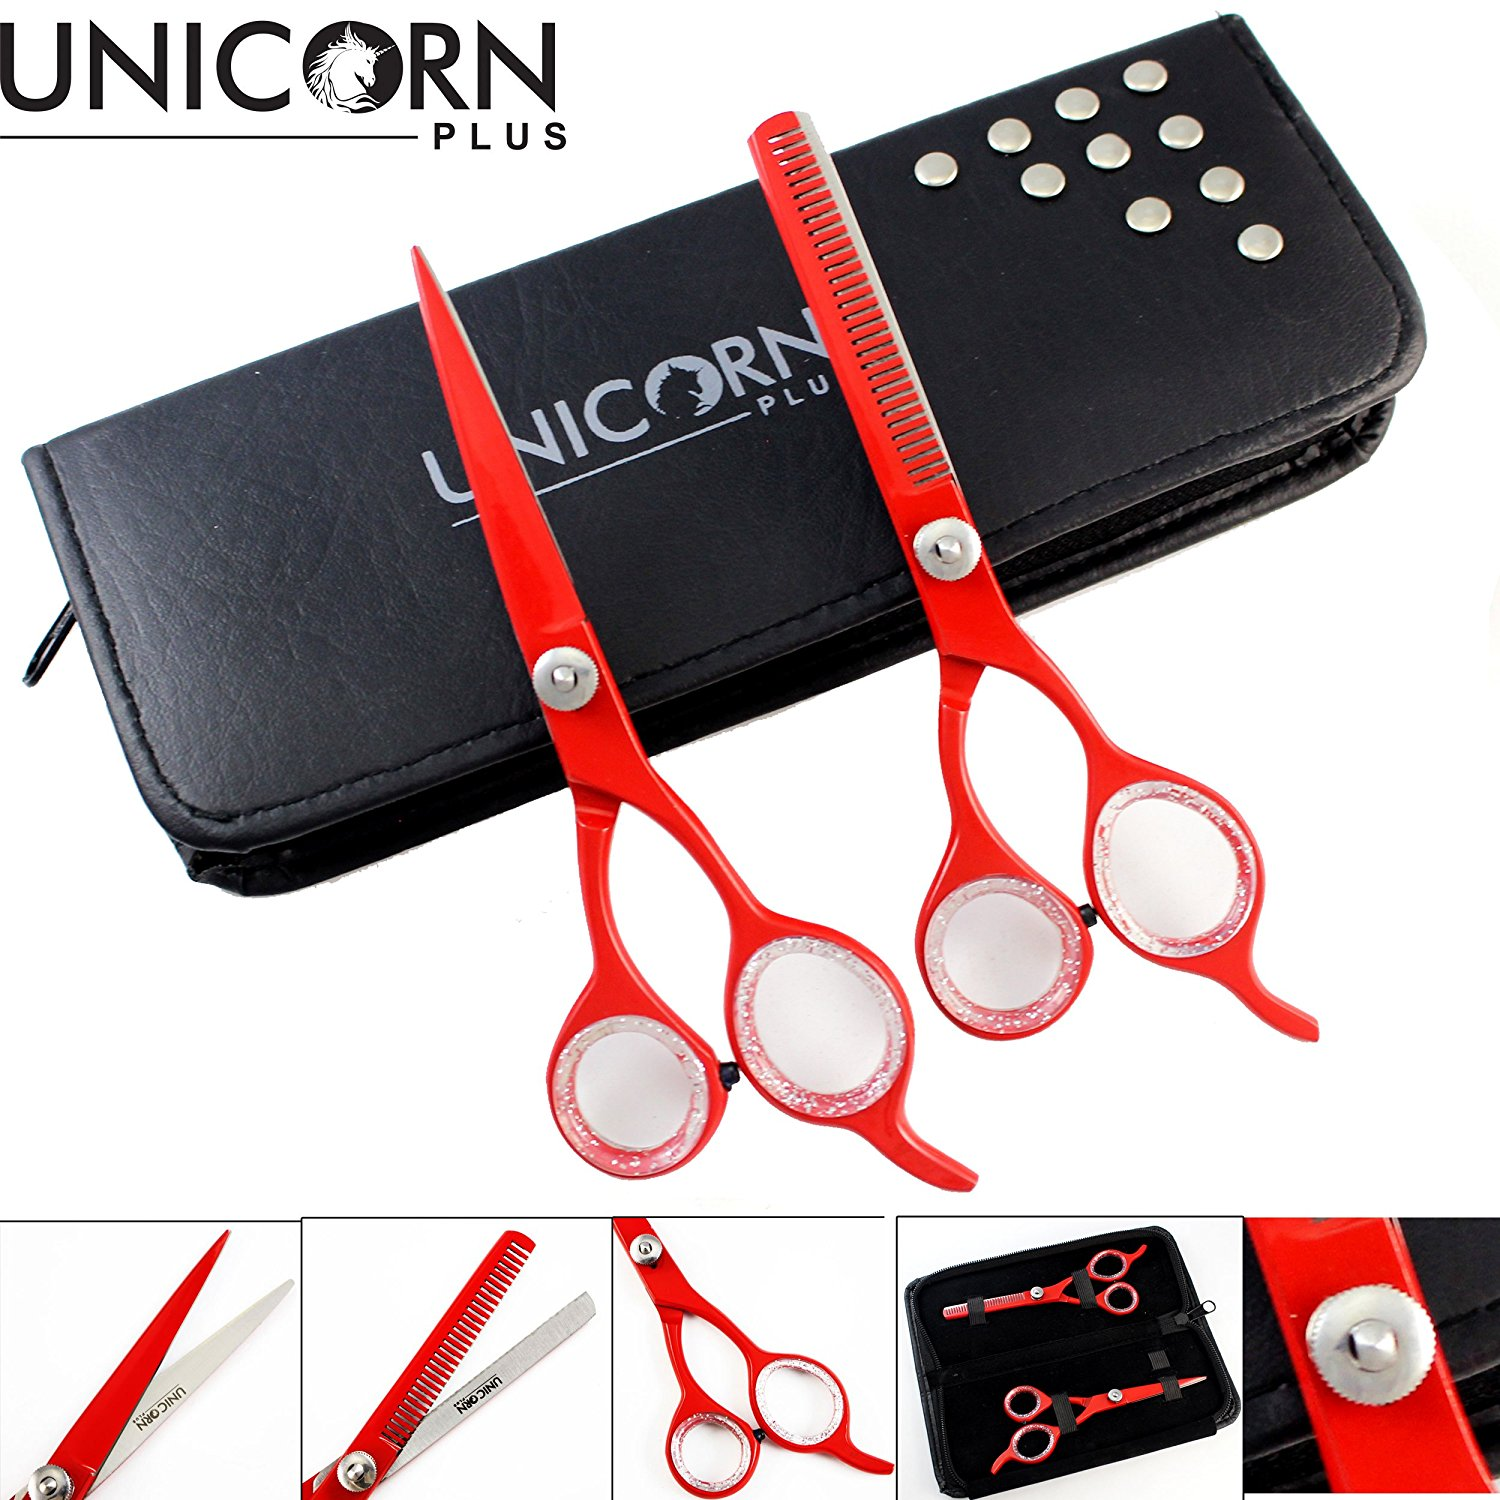 "Unicorn Plus - Professional Barber/salon/home Hair cutting + Hair Thinning Scissors/Shears 6.0"" Inch - Barber Salon Stylish Hairdressing Set Come in a PVC Pouch"